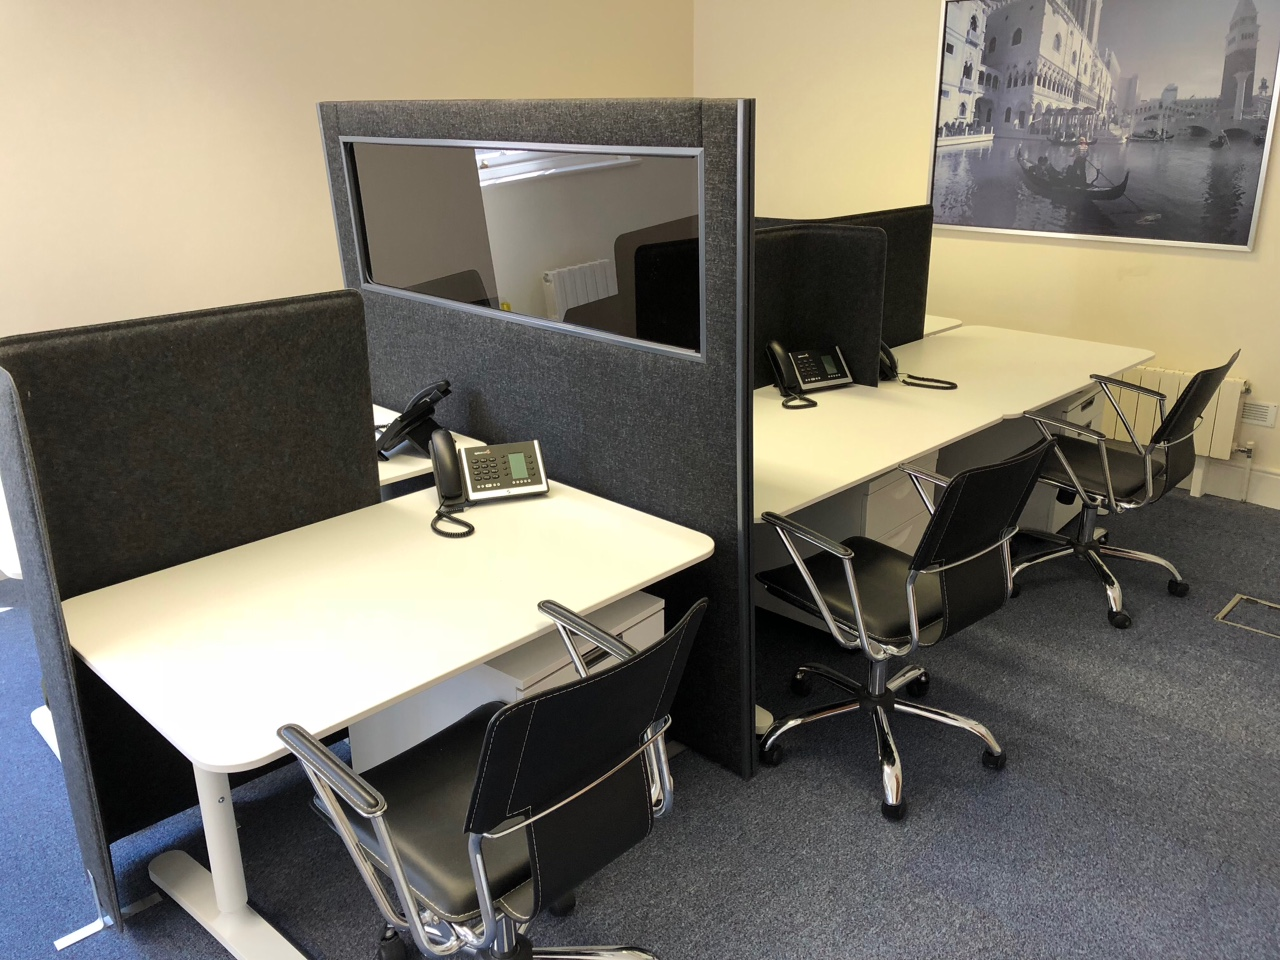 Coworking area, shared office space at Markham House, Wokingham